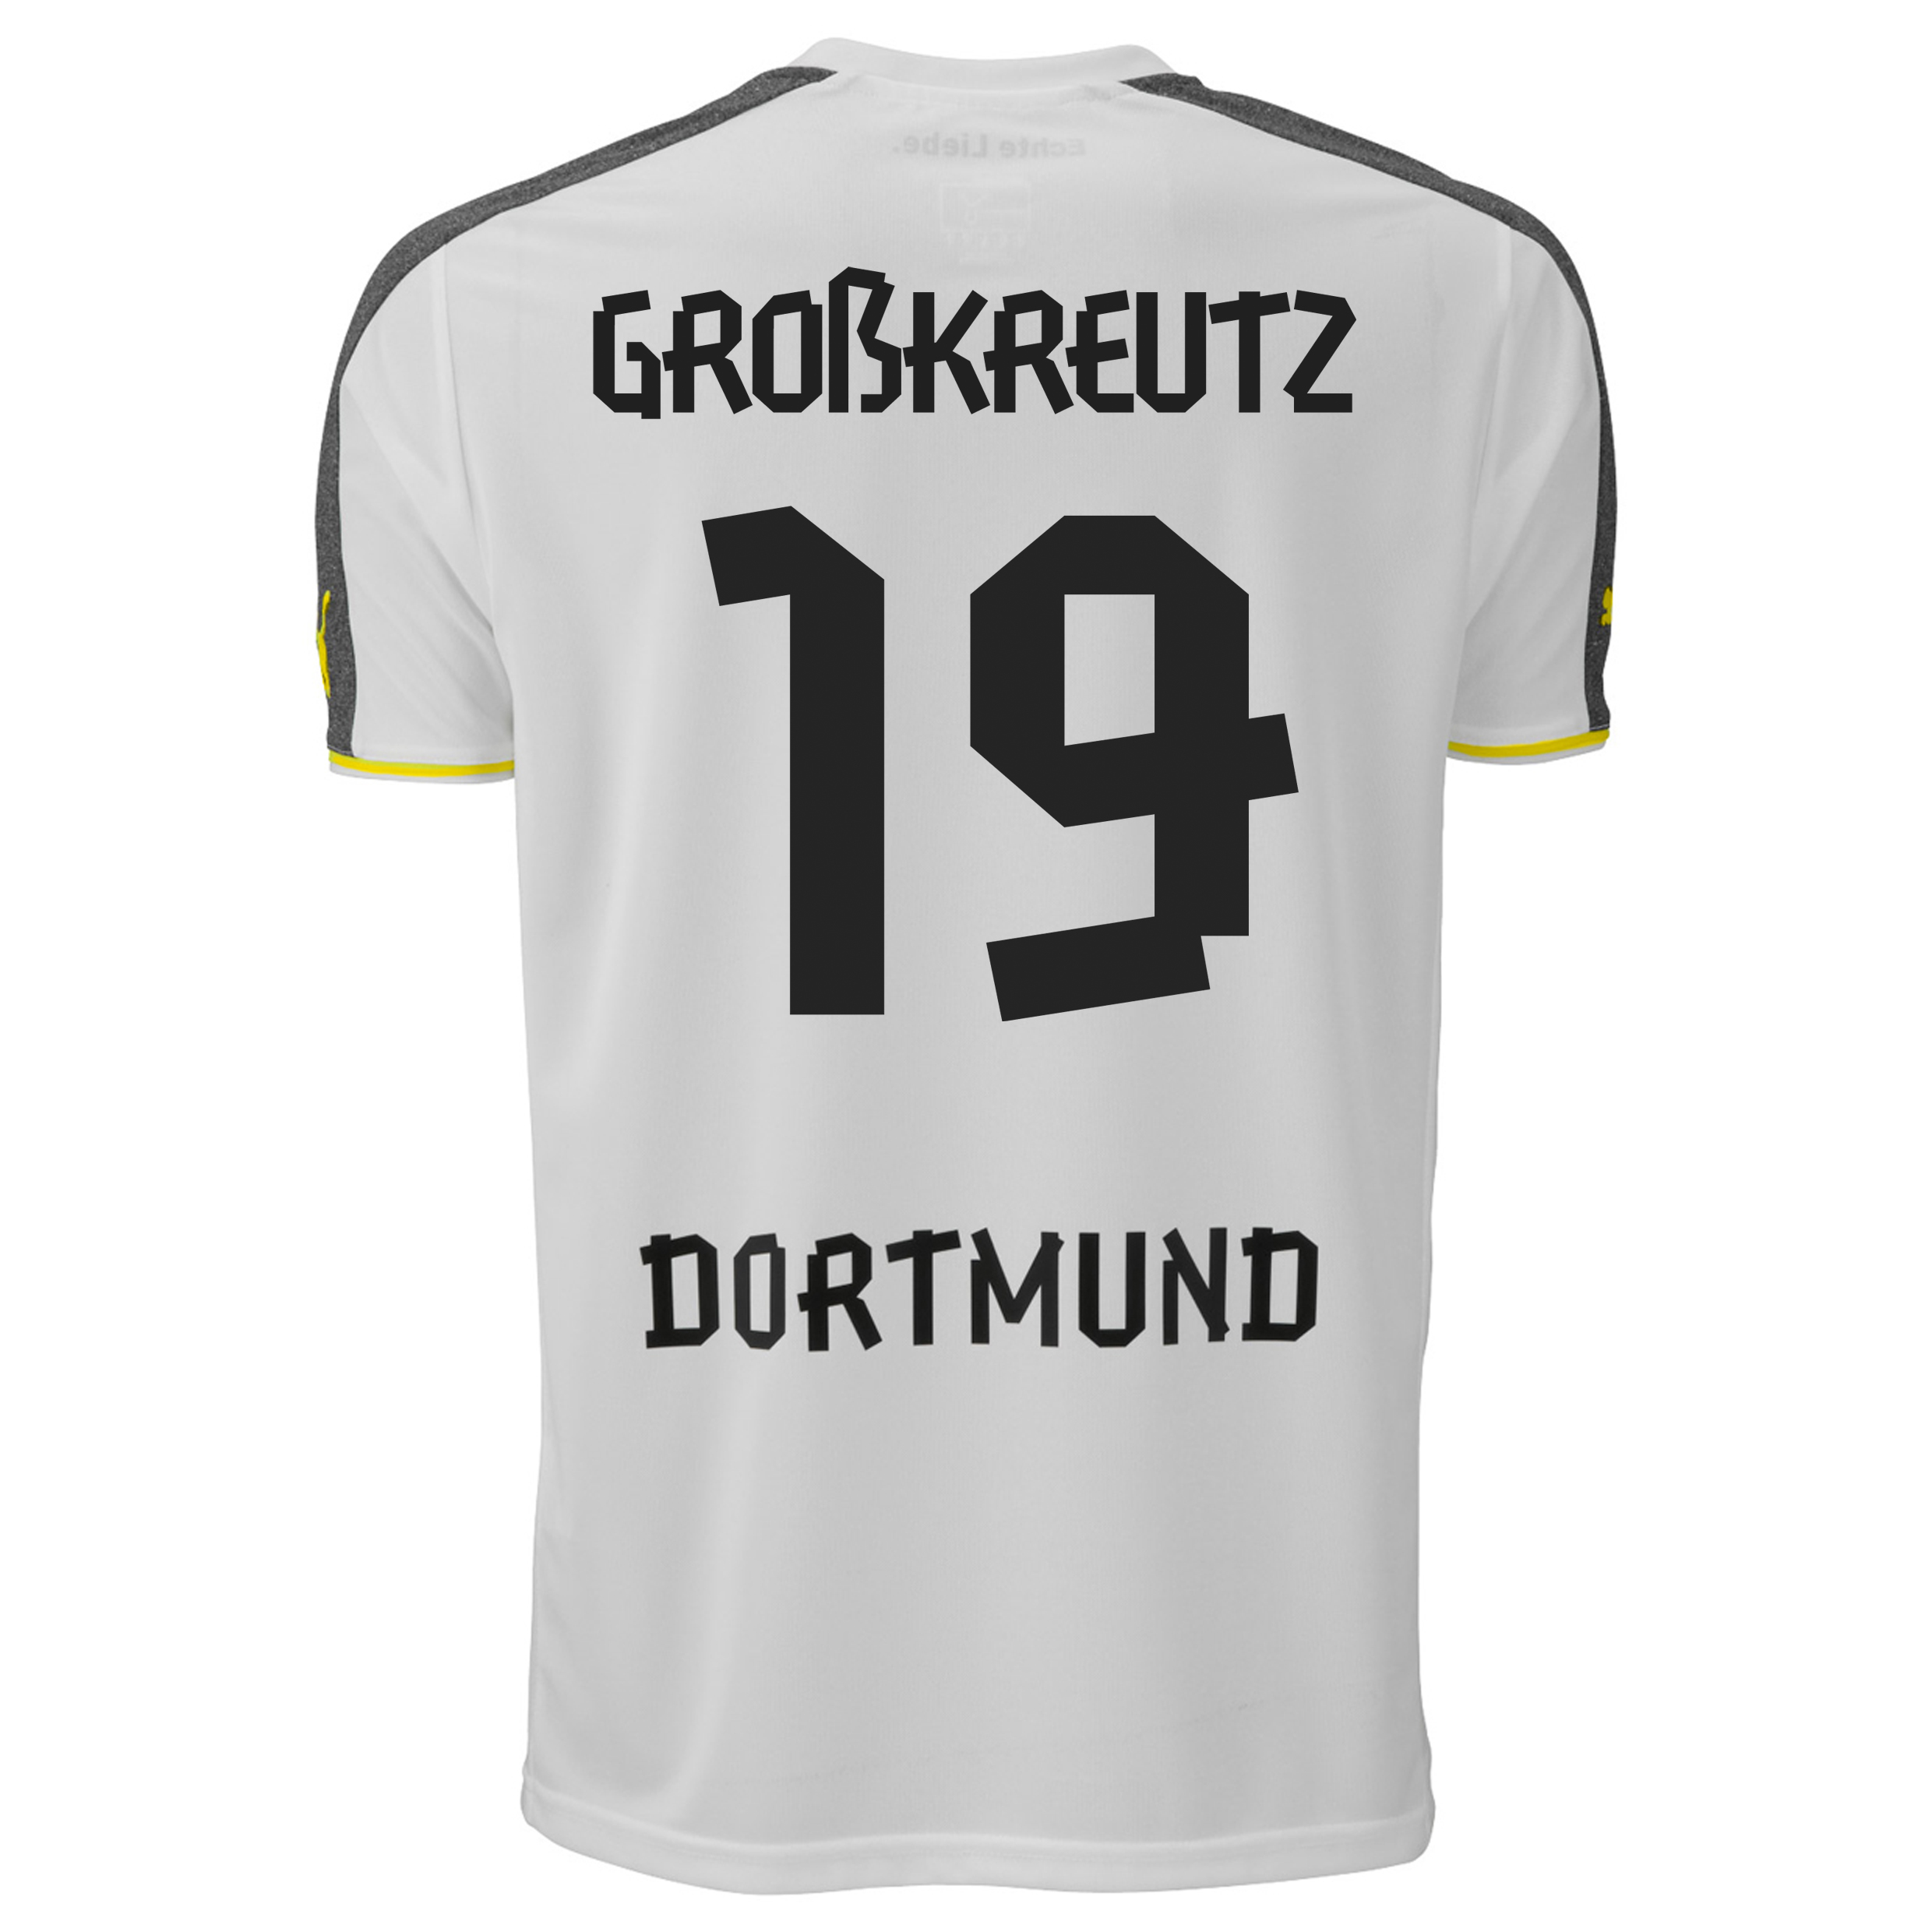 BVB Third Shirt 2013/14 with Grosskreutz 19 printing